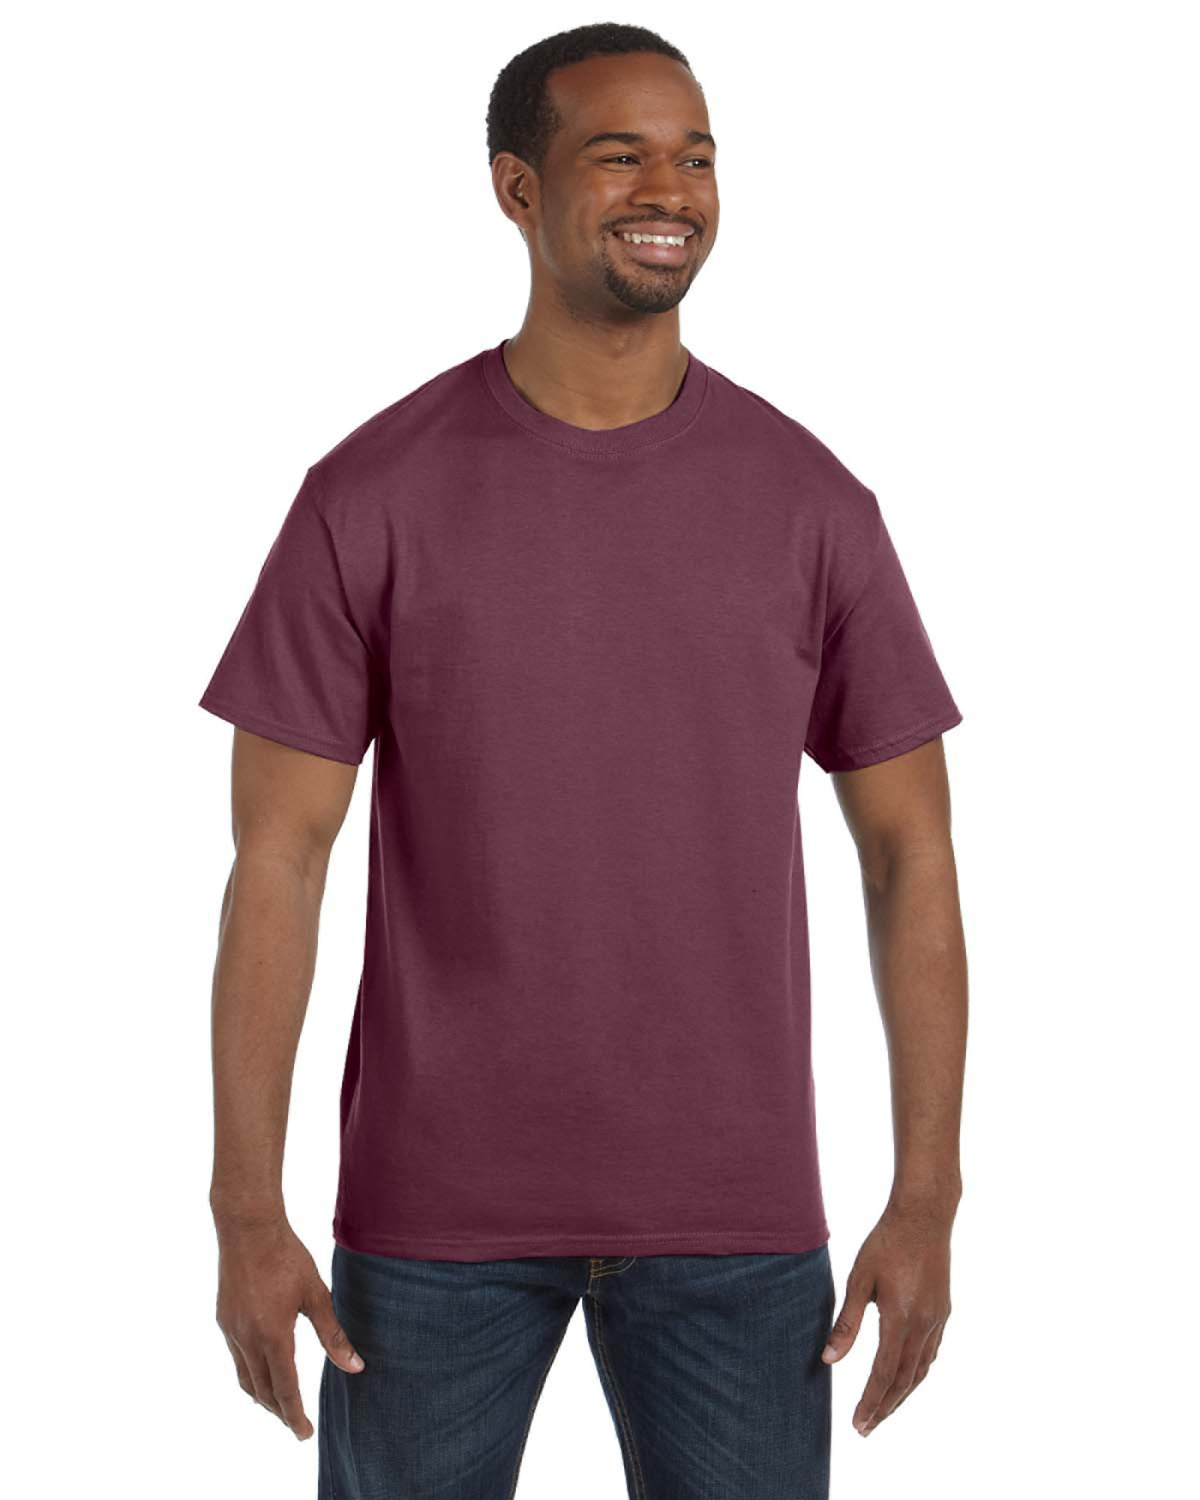 click to view Vint Hth Maroon